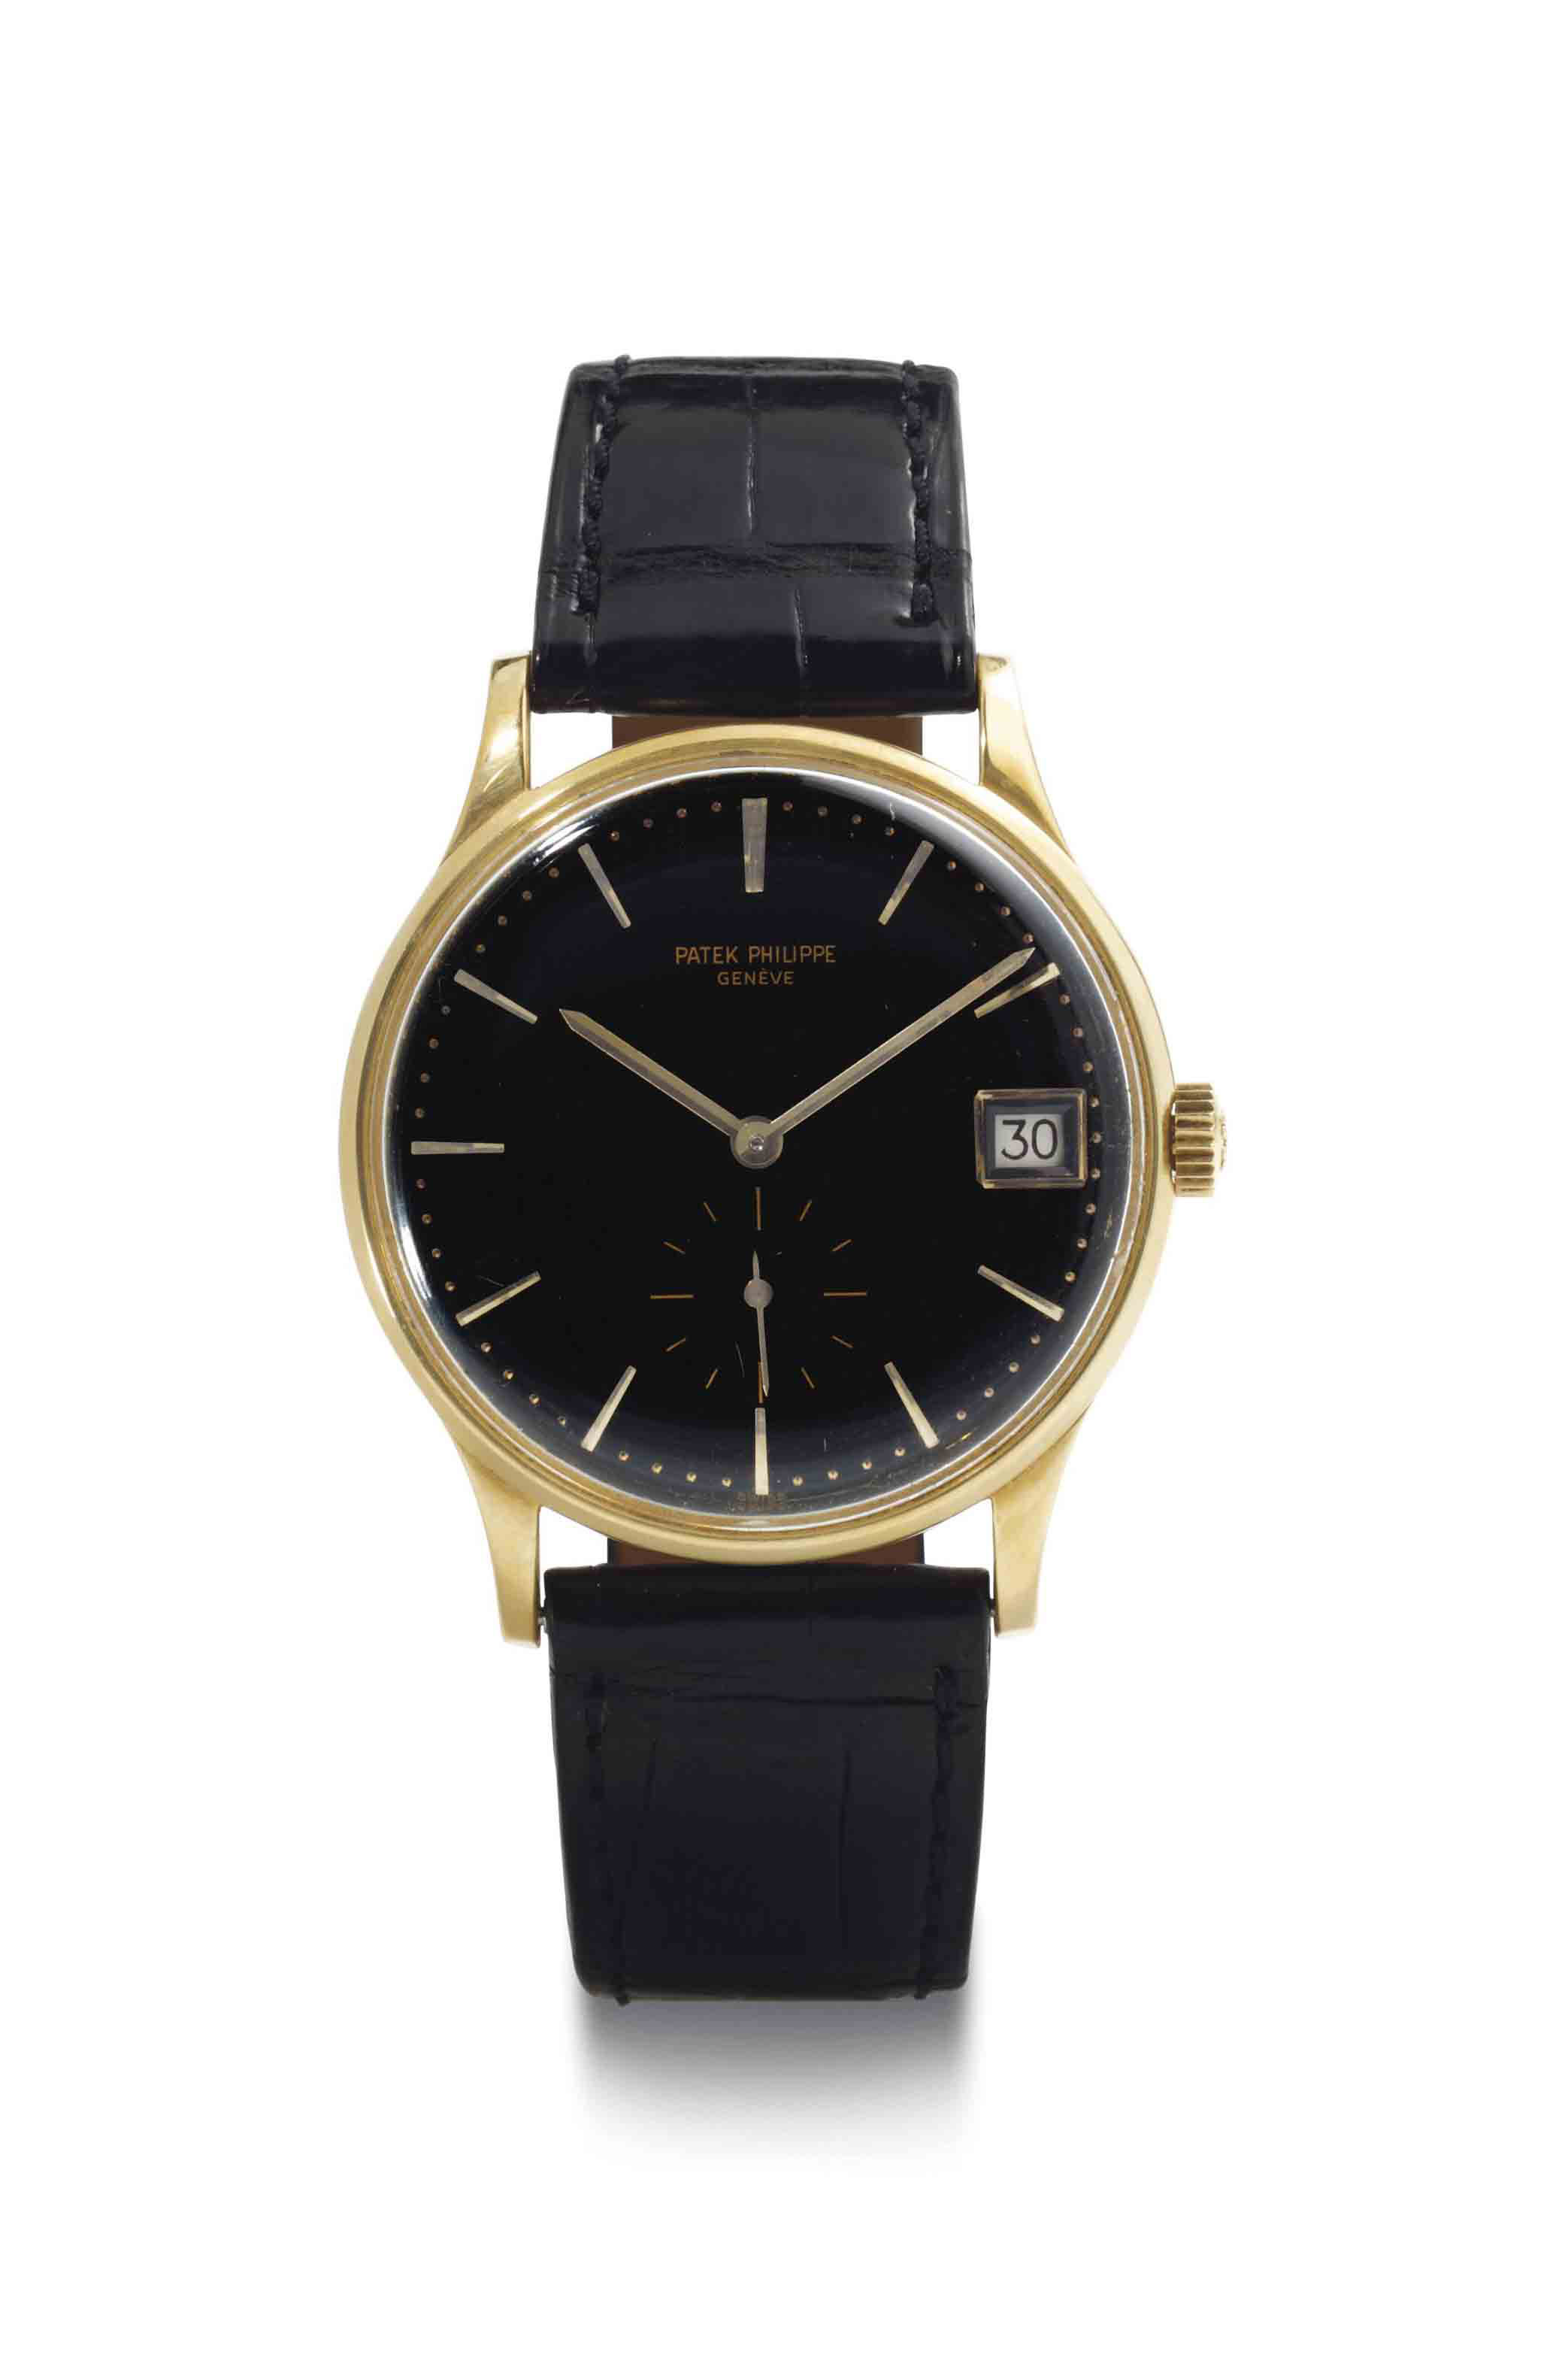 Patek philippe an 18k gold automatic wristwatch with date signed patek philippe geneve ref for Patek philippe geneve